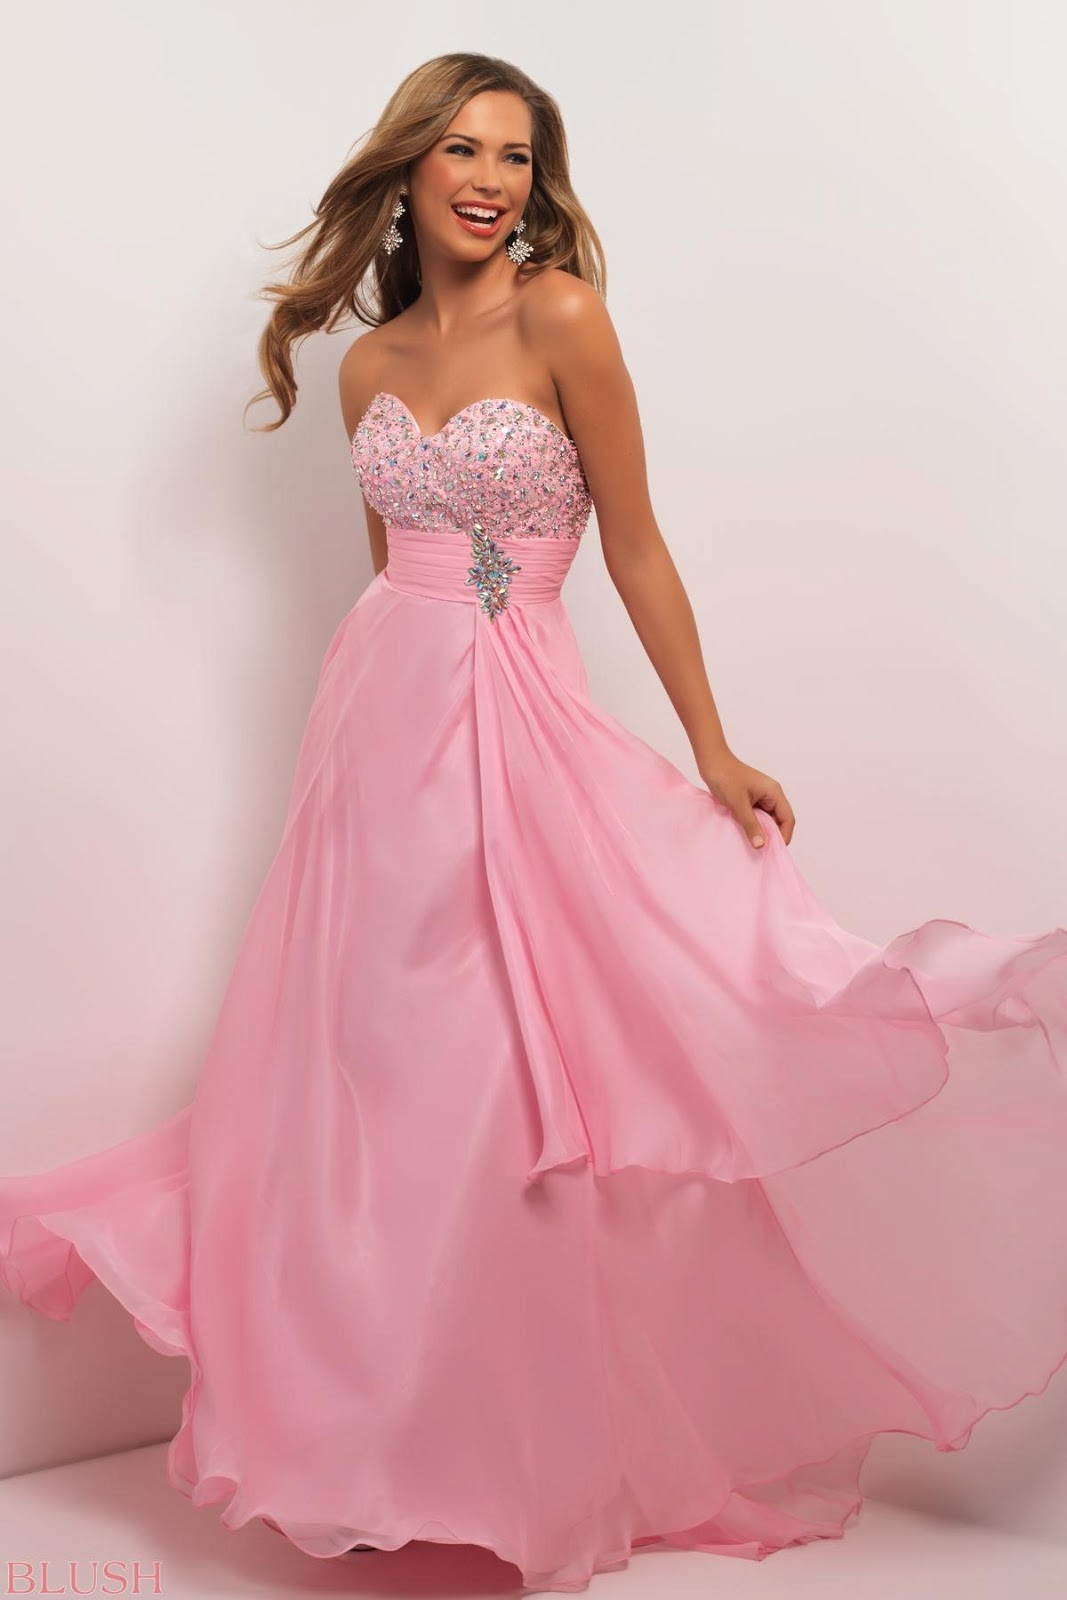 Blush prom dresses 2013 collection fashion party prom for Prom dress as wedding dress